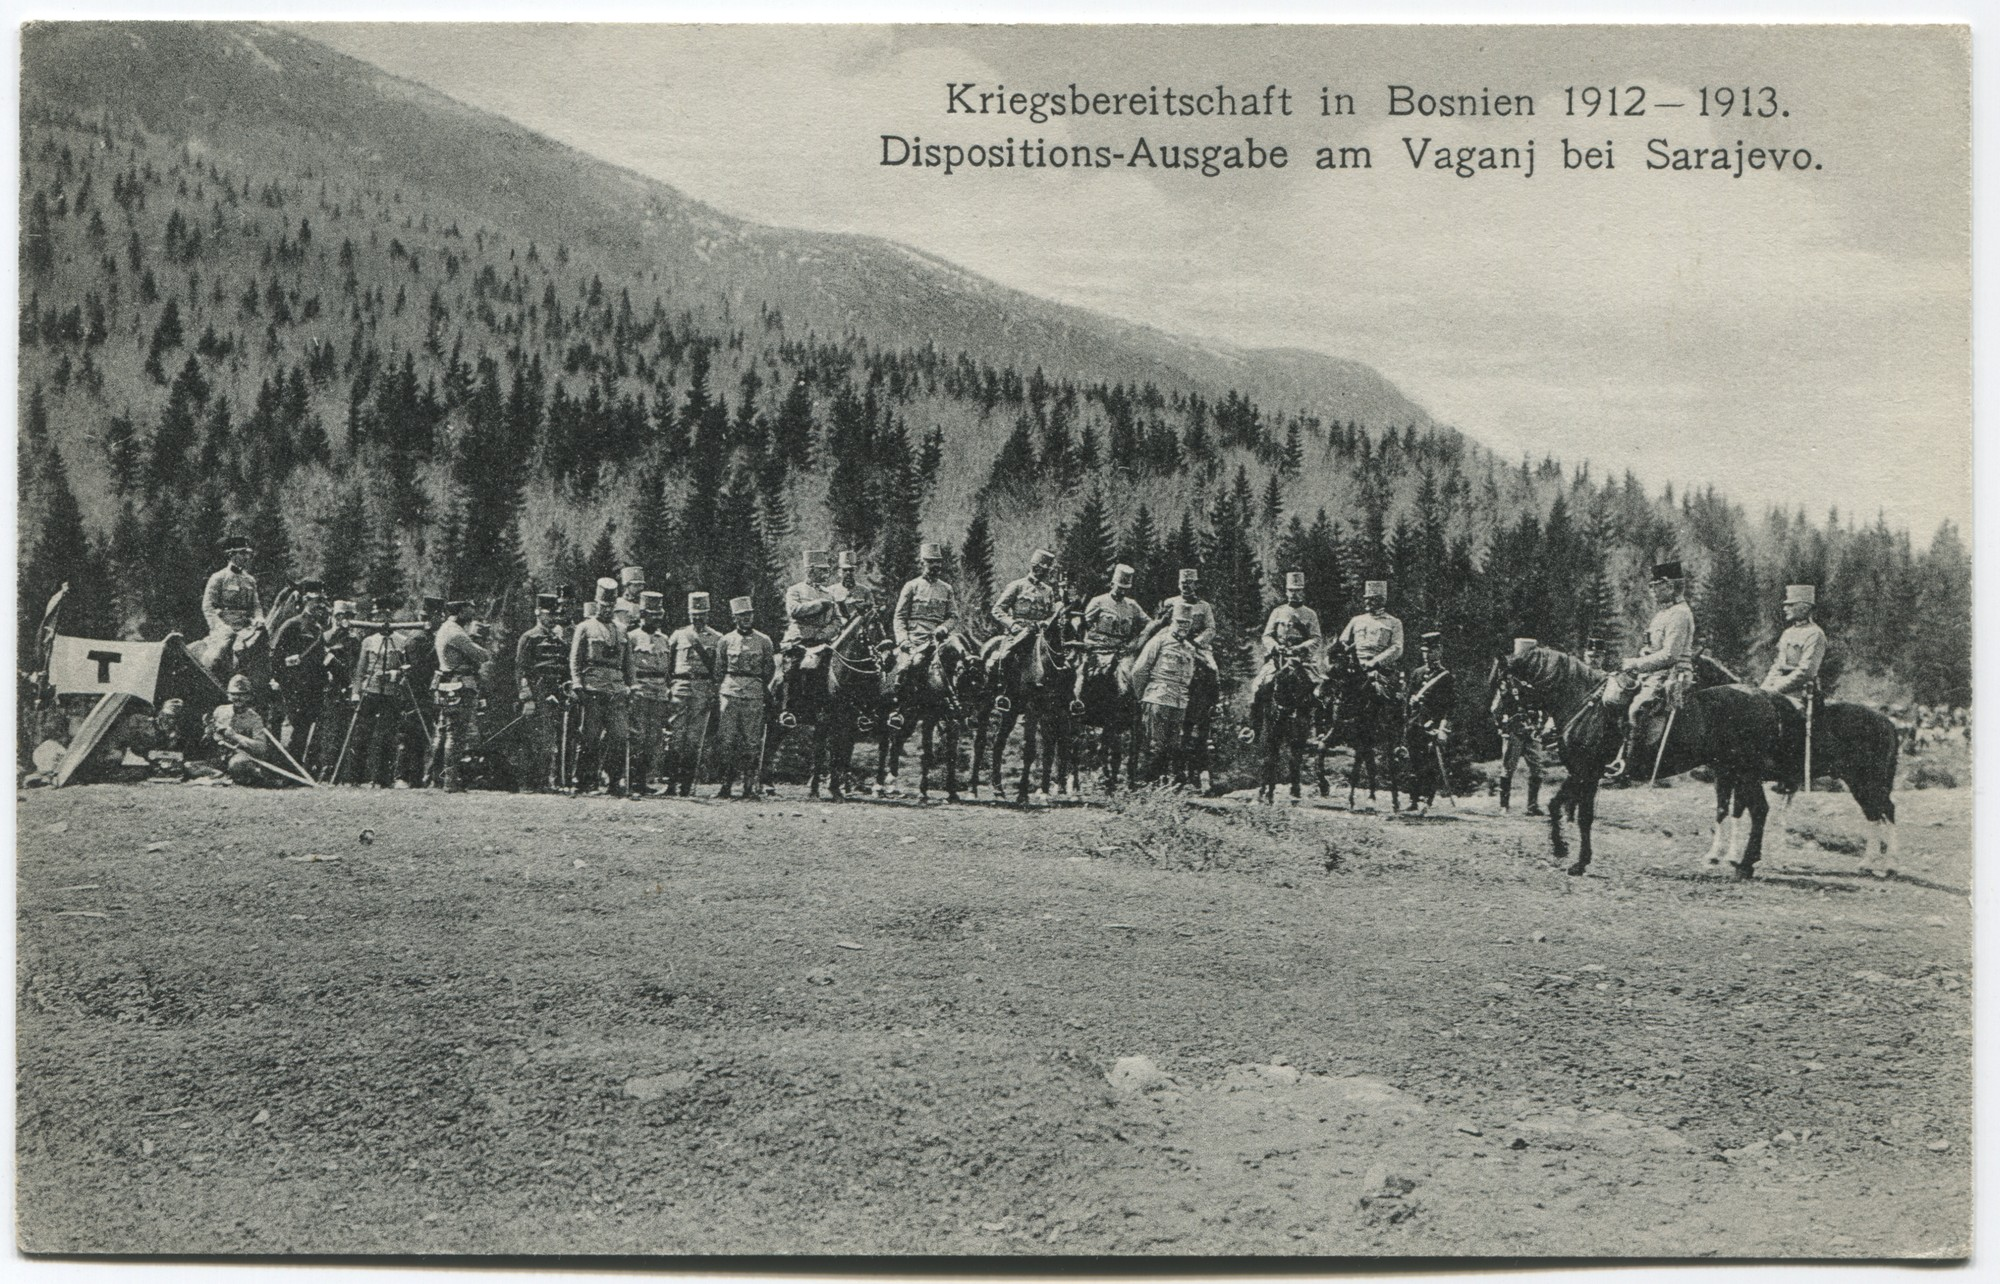 """Readiness For War In Bosnia 1912-1913. Communication Of Anticipated Troop Dispositions On Mount Vaganj Near Sarajevo."", © Museum of City of Sarajevo"